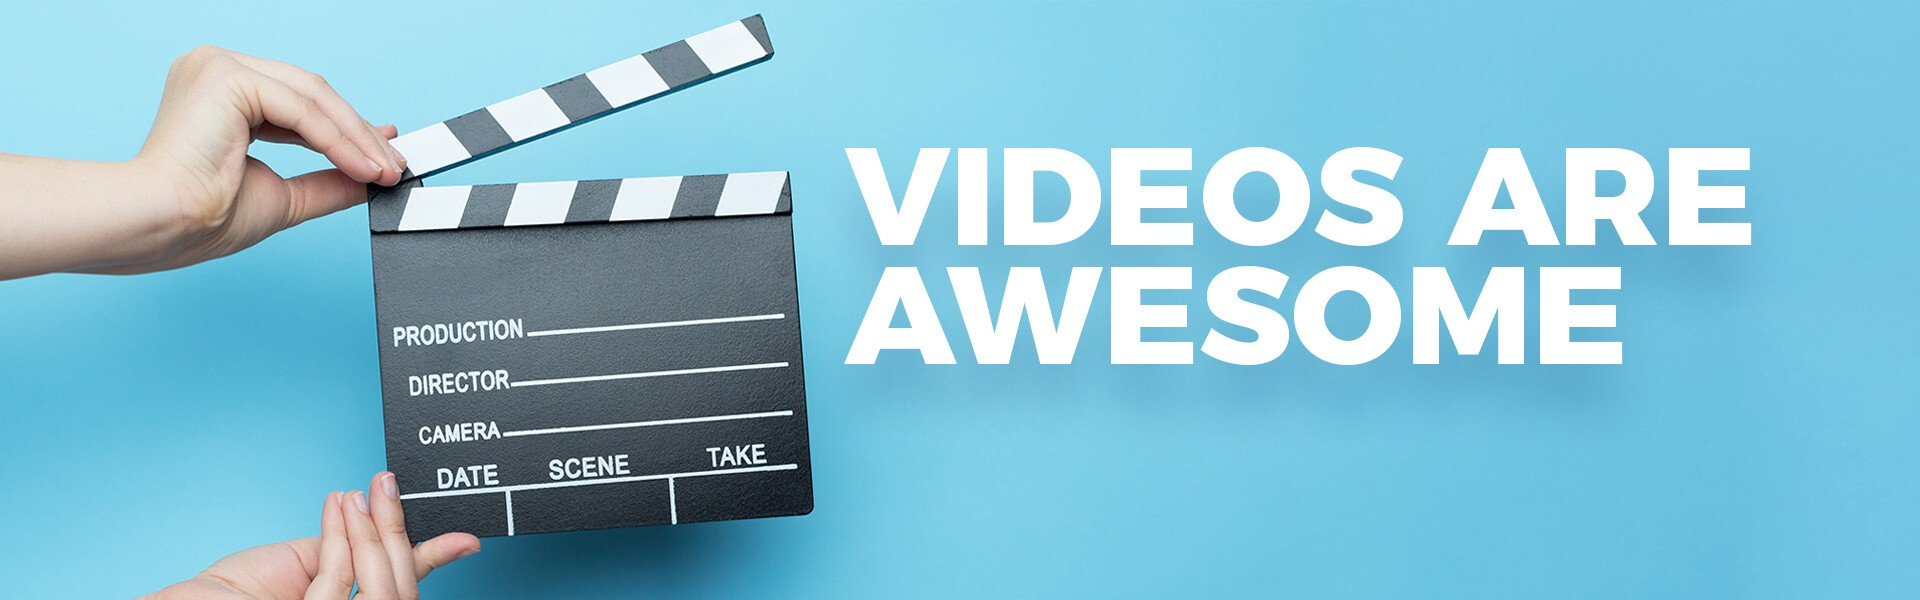 Impressive facts about videos that show they rule content creation and consumption.